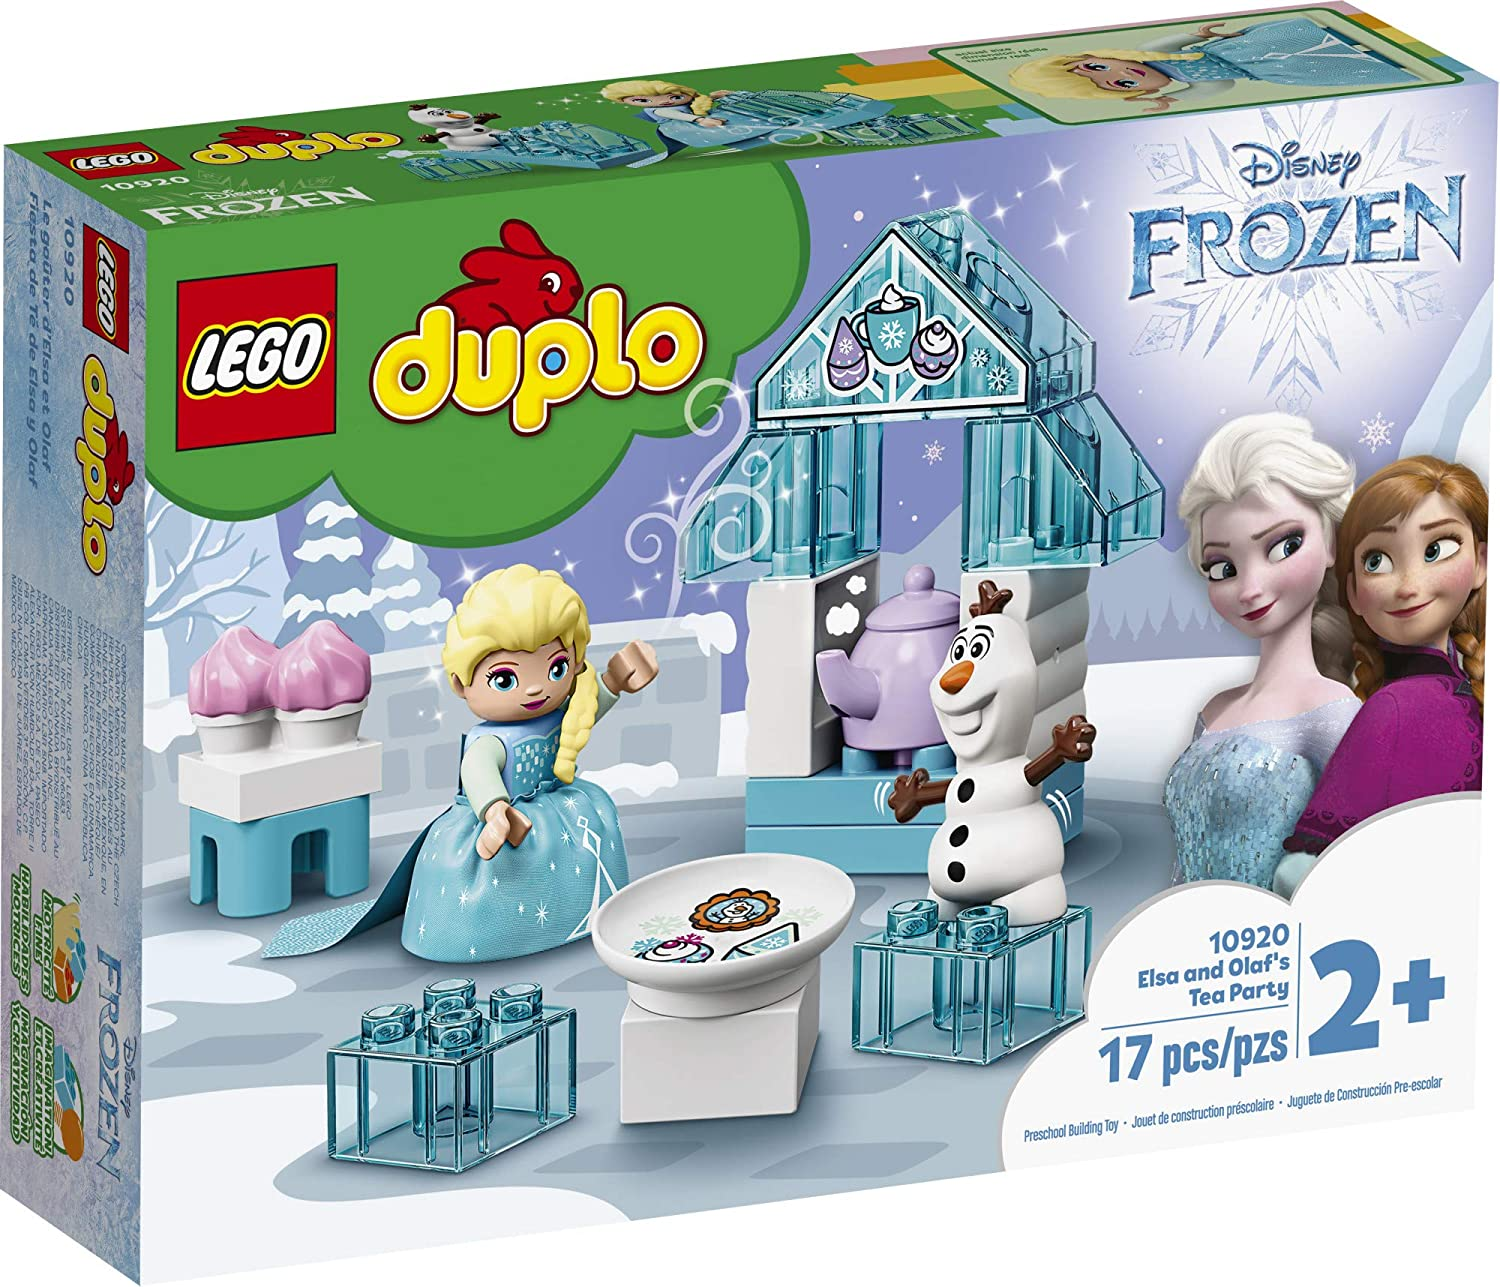 LEGO DUPLO Disney Frozen Toy Featuring Elsa and Olaf\'s Tea Party 10920 Disney Frozen Gift for Kids and Toddlers, New 2020 (17 Pieces)